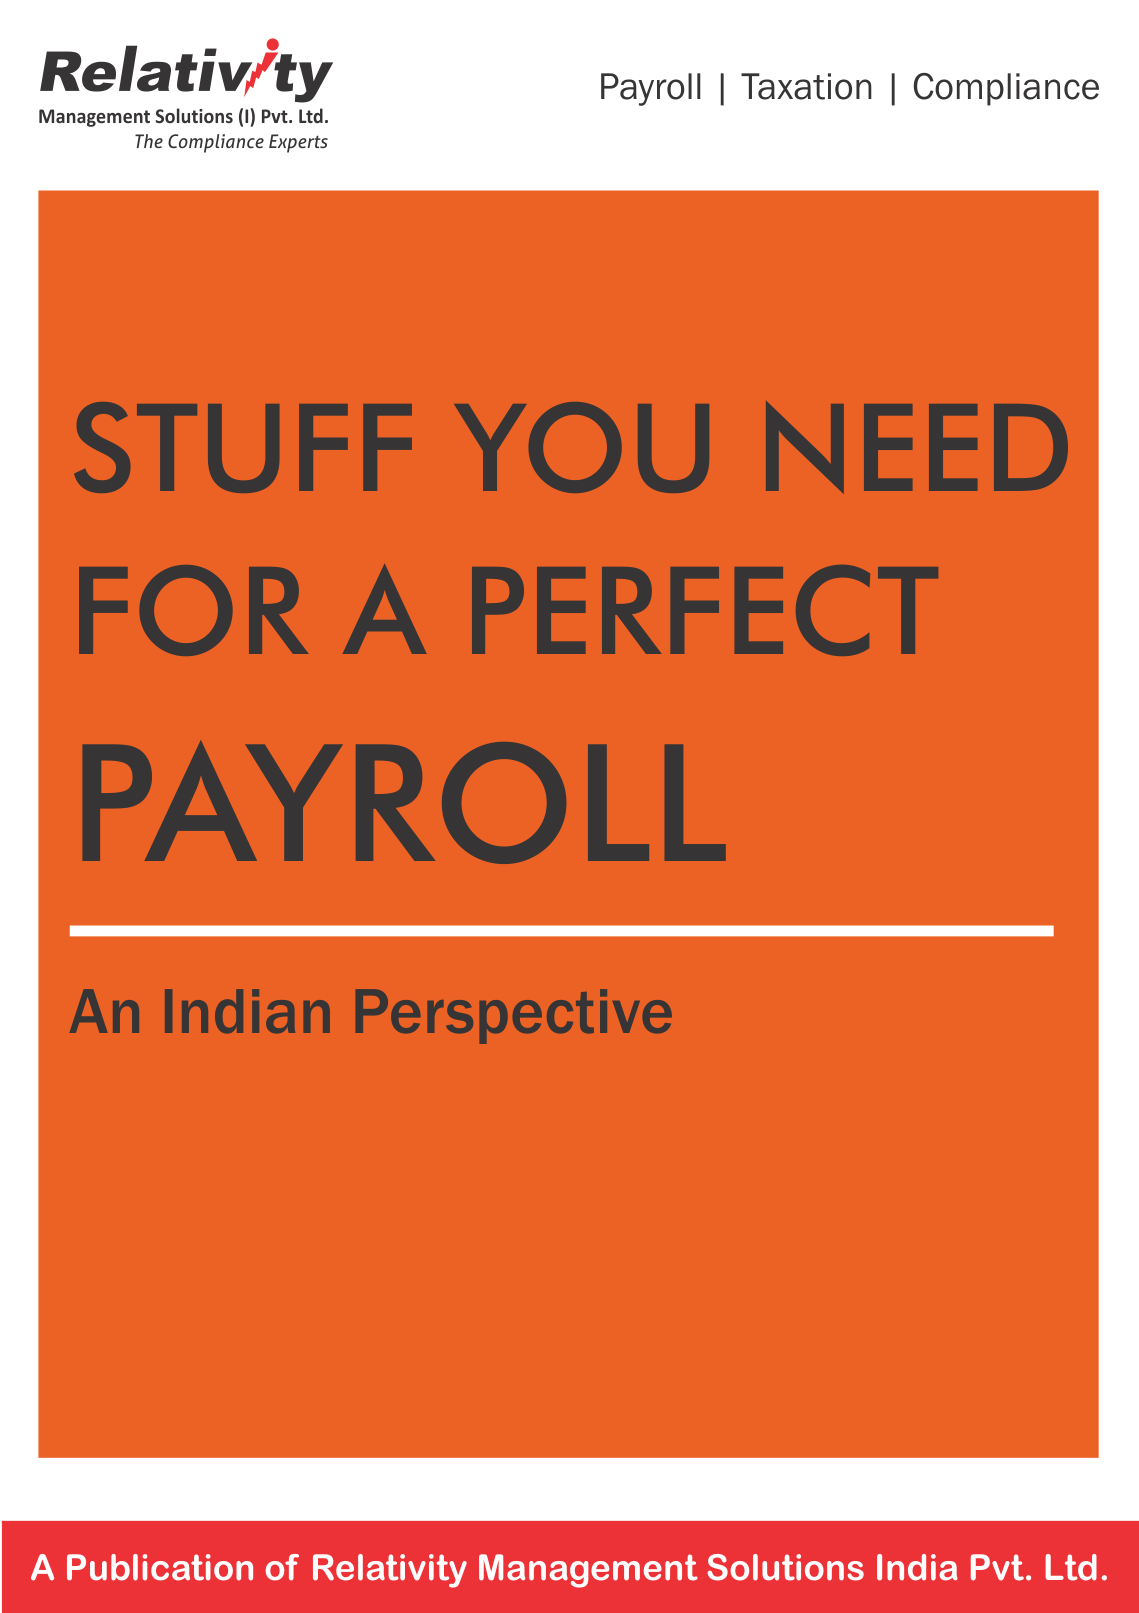 Stuff you need for a perfect payroll